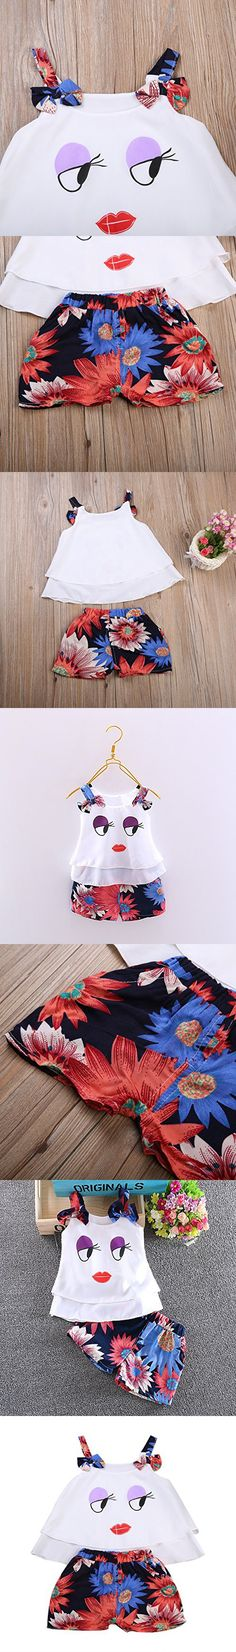 2 Pcs Baby Girls Lovely Eyes Lips Halter Sleeveless Shirt + Floral Shorts Pants Clothing Sets (6-18M, Purple)